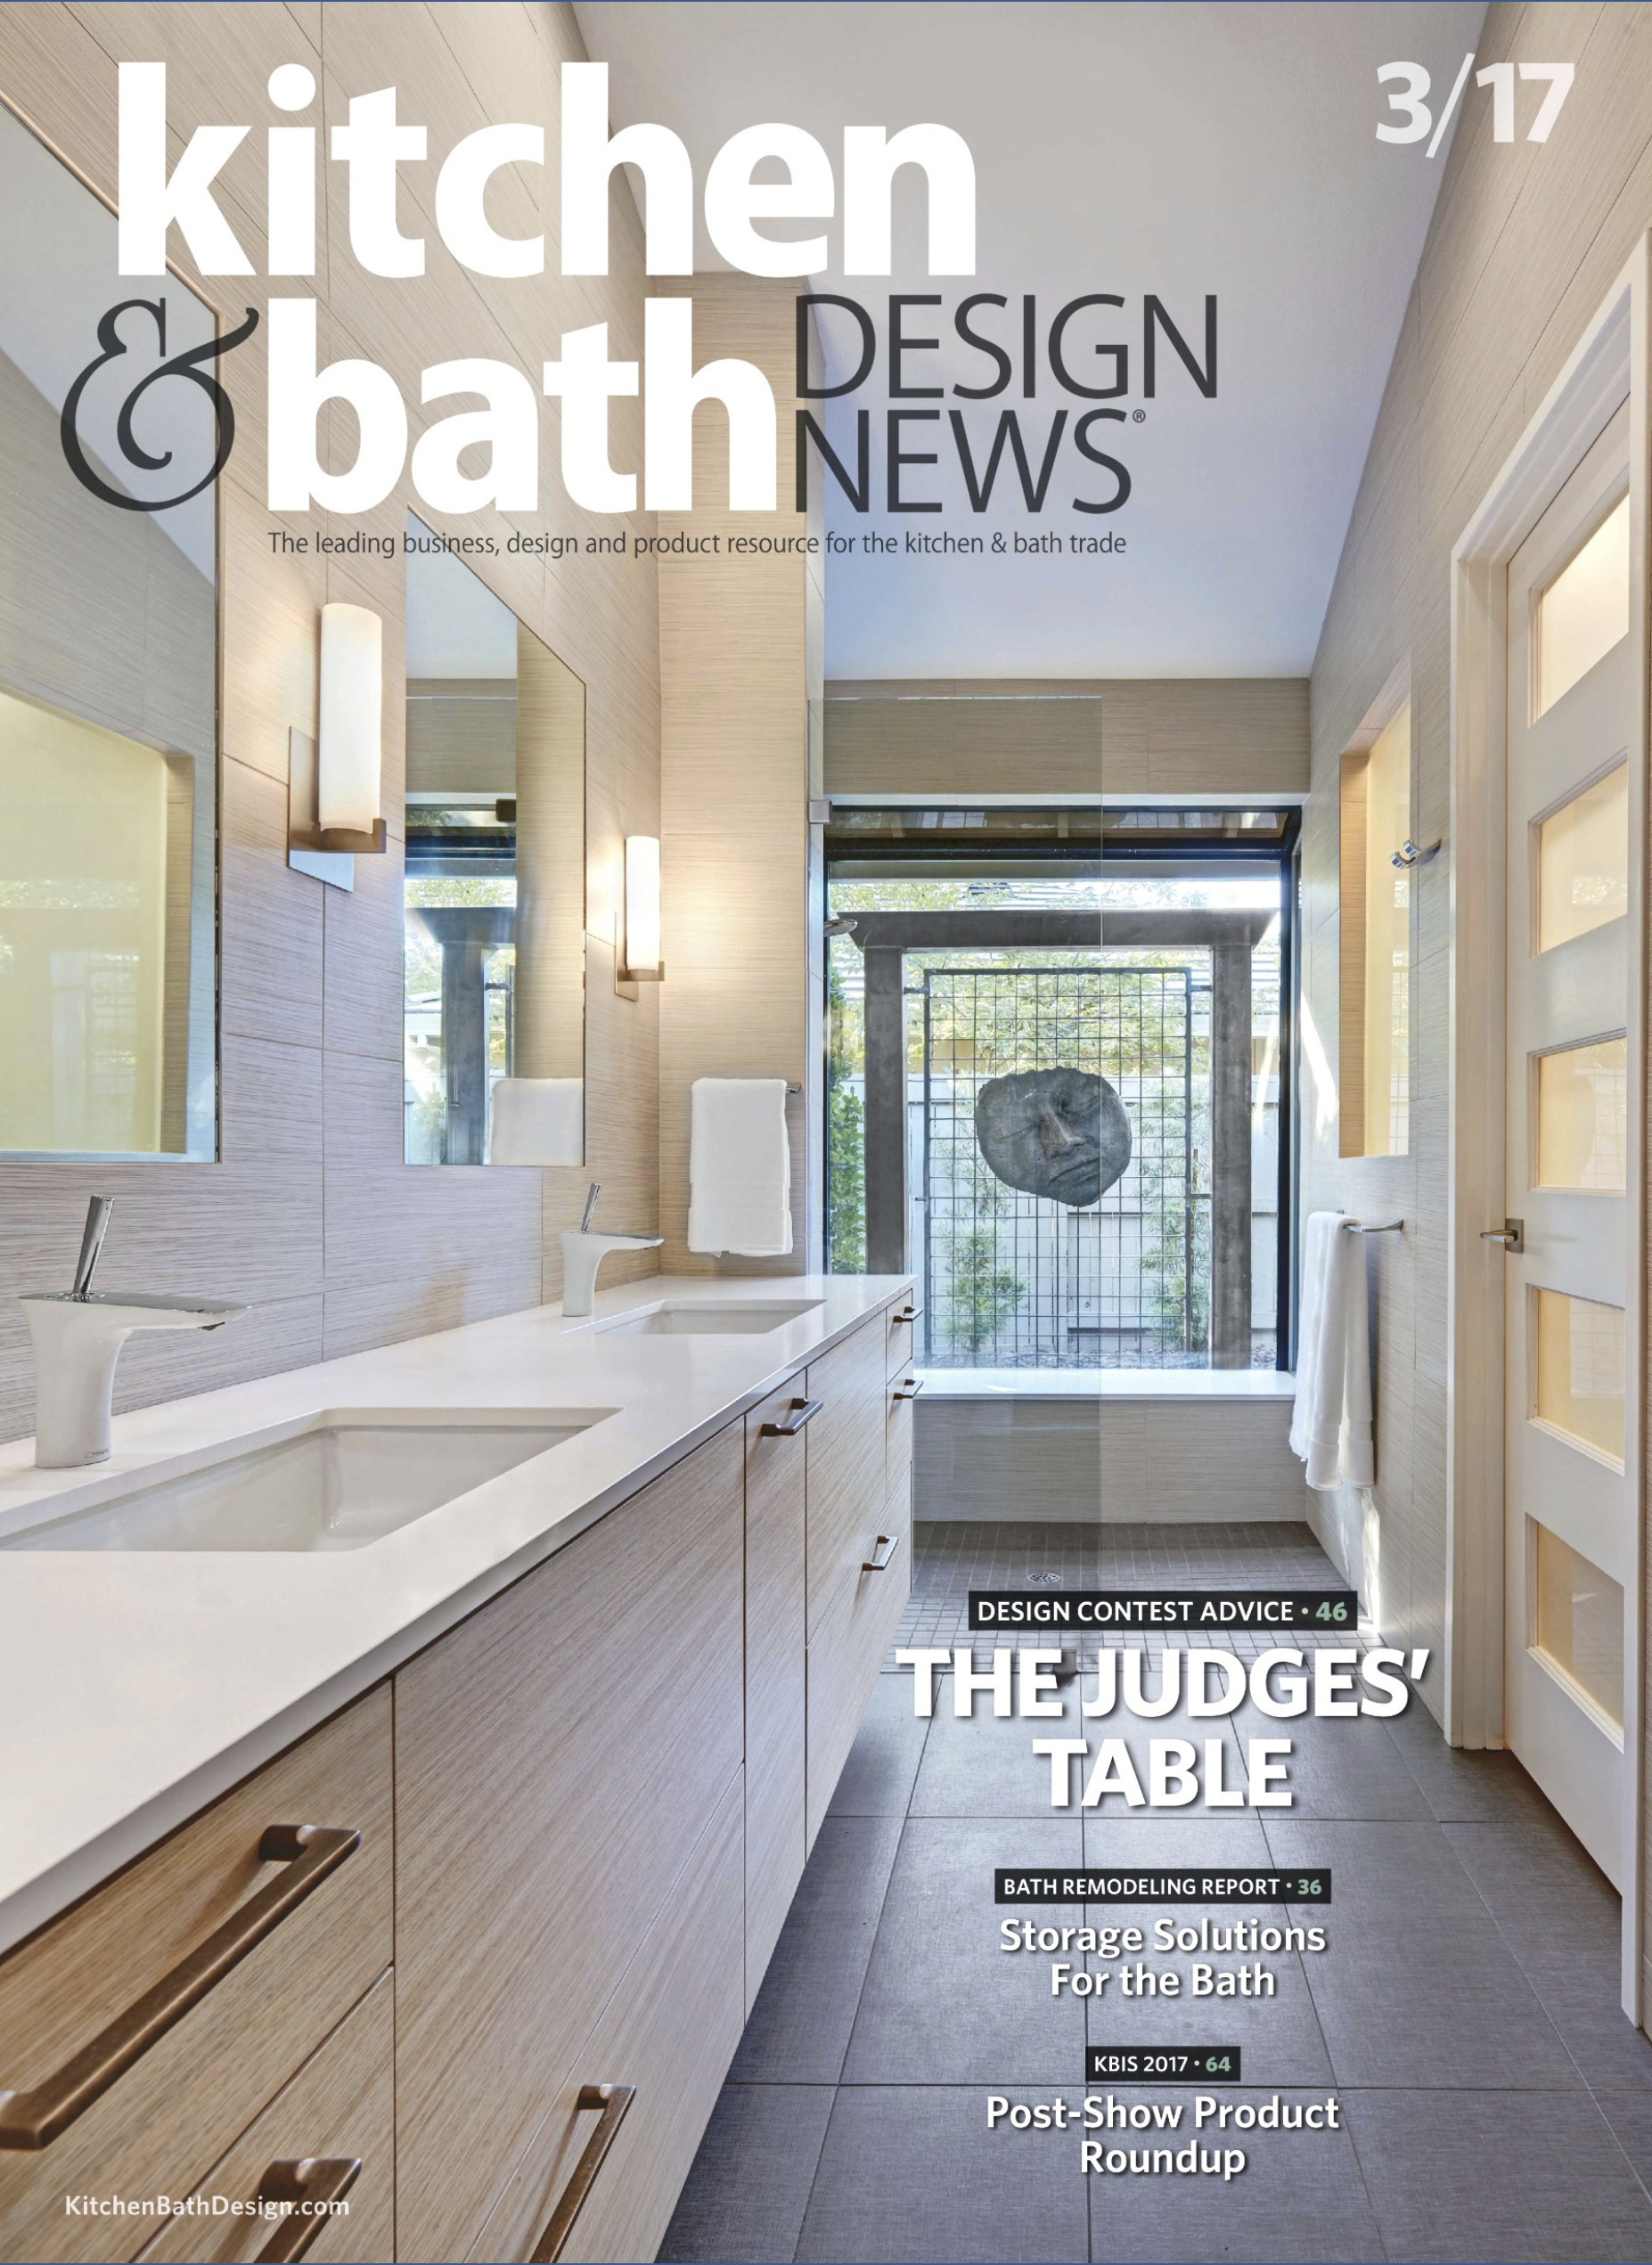 Kitchen and Bath Design-032017-1.png